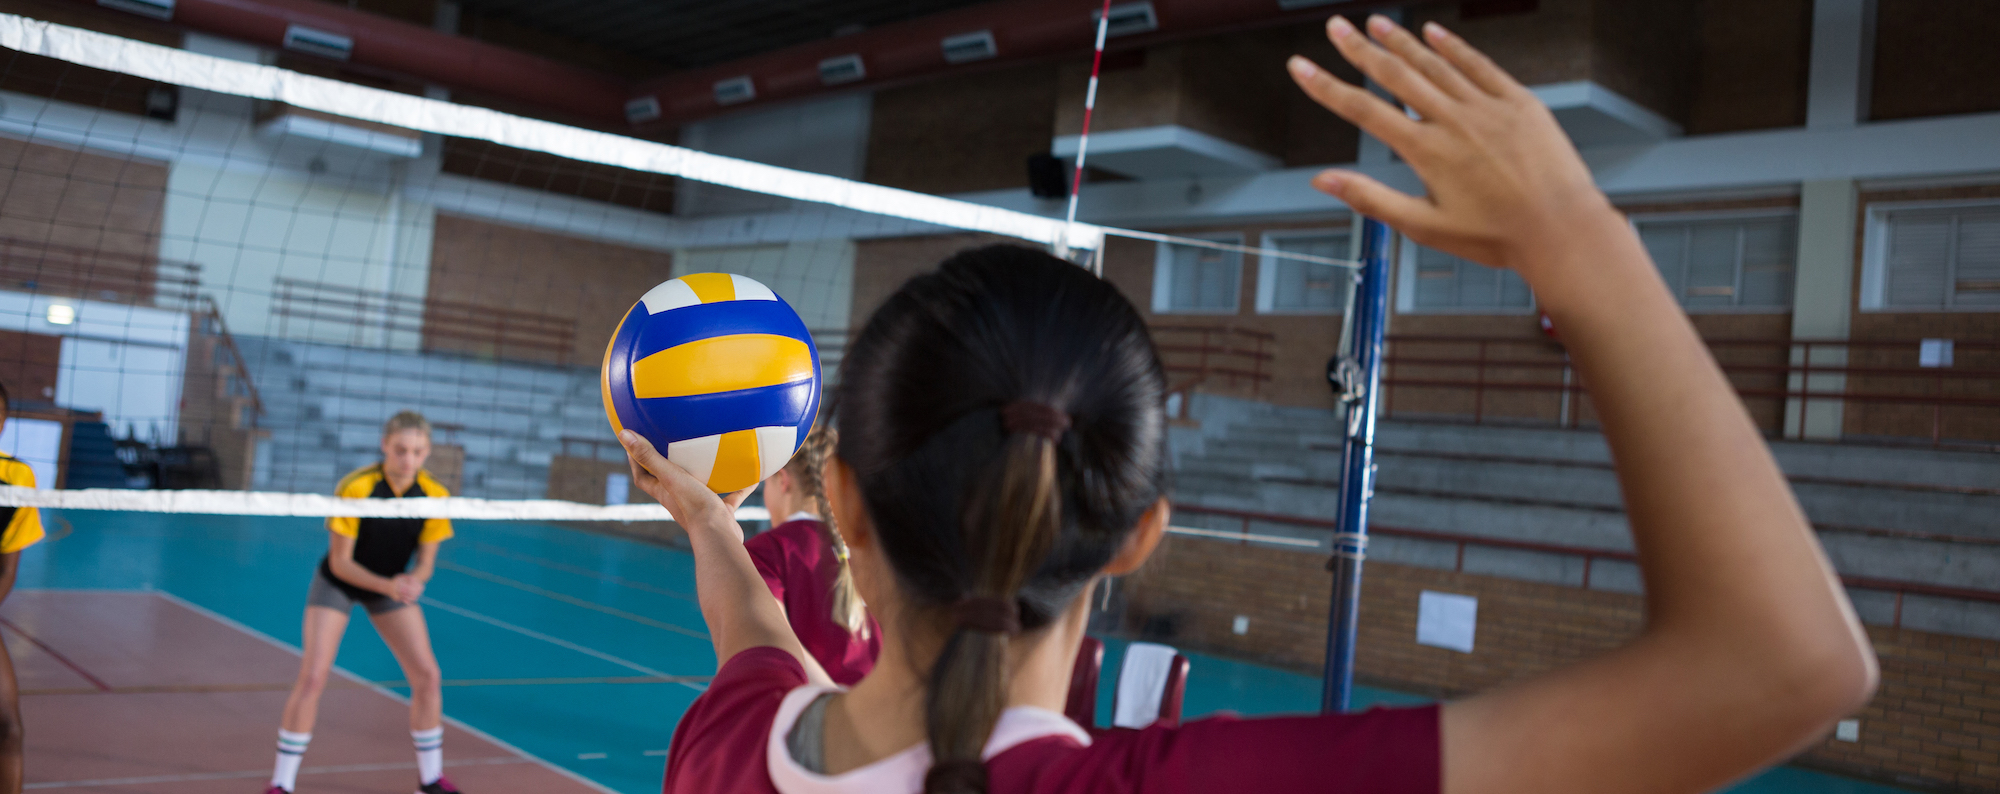 volleyball cropped